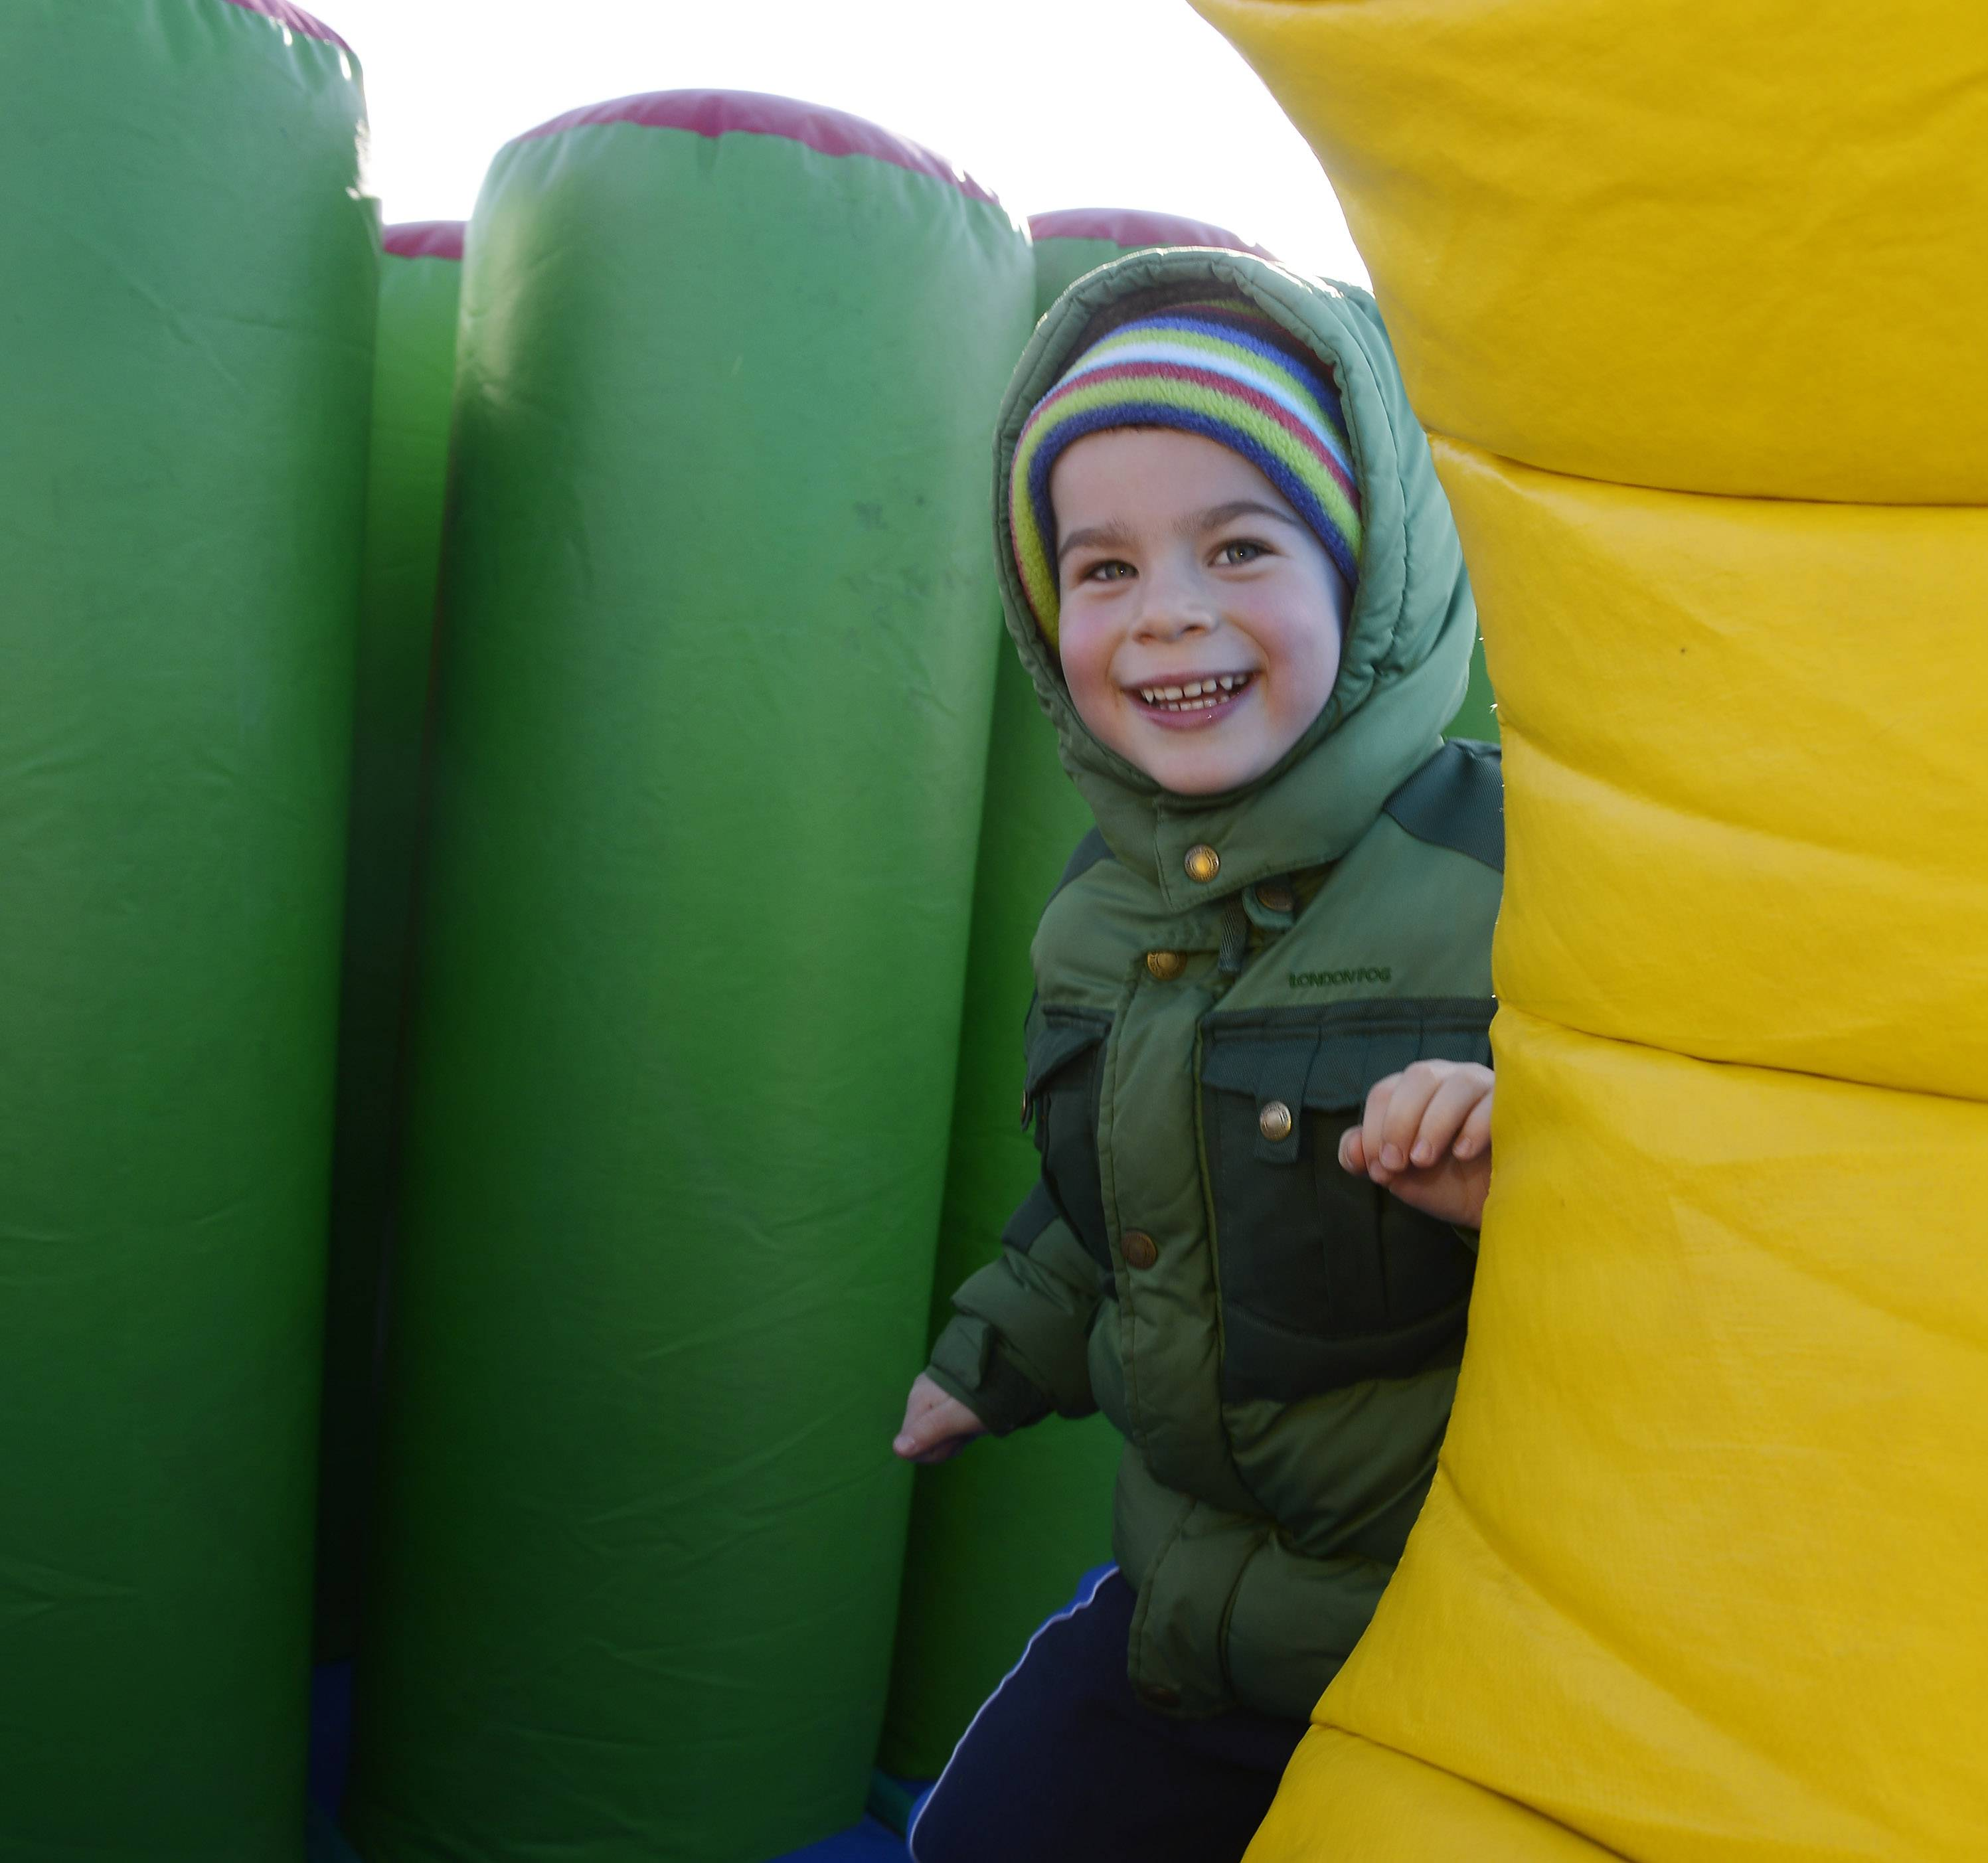 JOE LEWNARD/jlewnard@dailyherald.com Danny Lawitz, 4, of Wauconda has fun on the inflatable play set Saturday during the Winter Wonderland Carnival at Community Park in Hawthorn Woods.